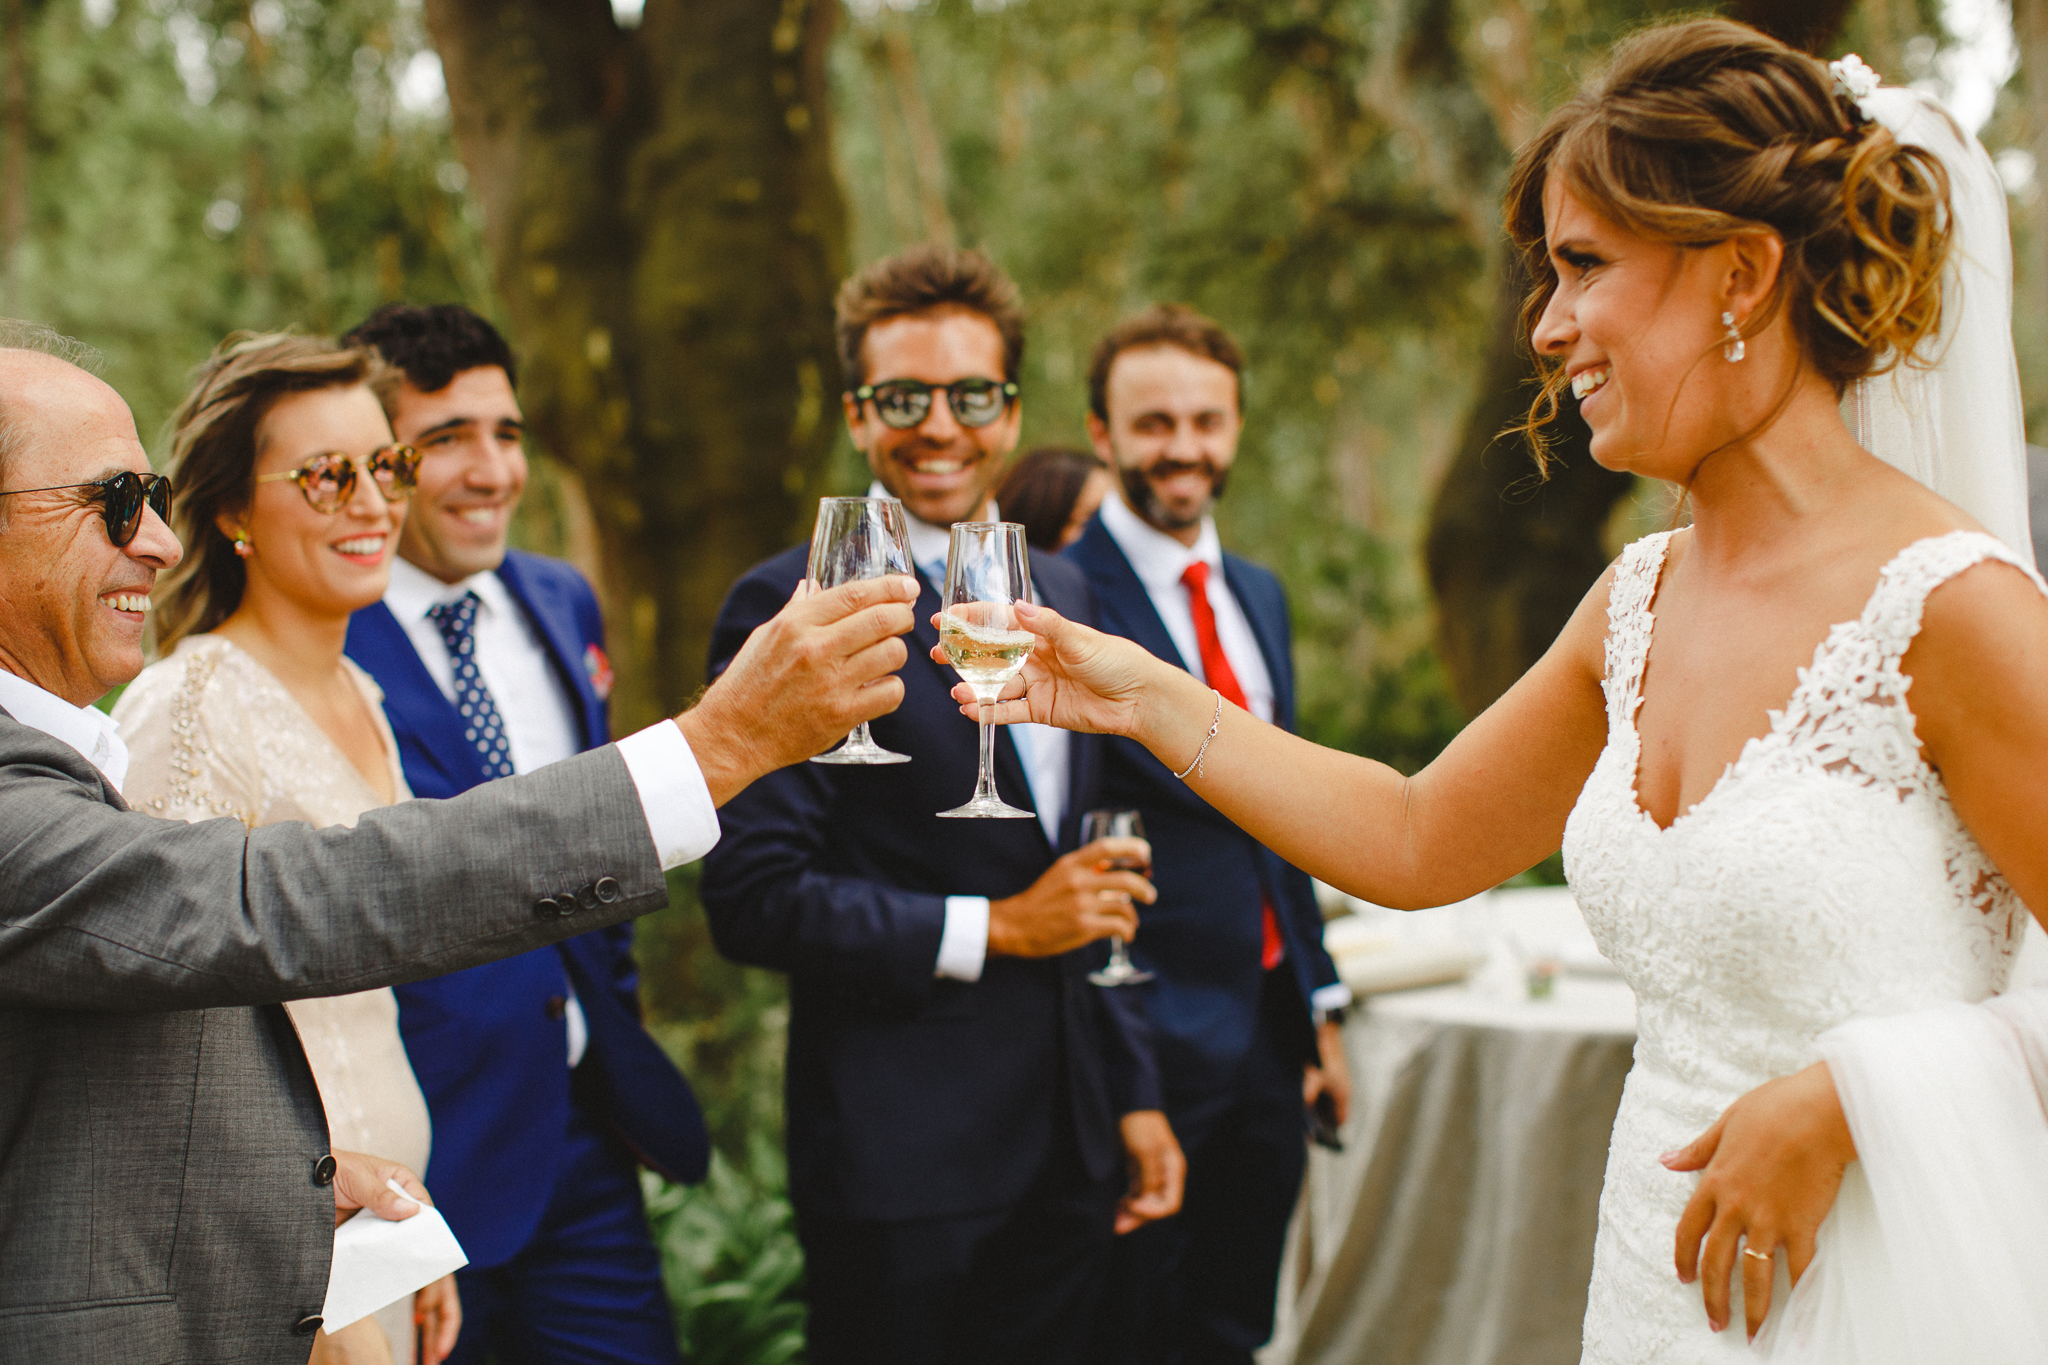 Bride making a toast with friends during cocktail